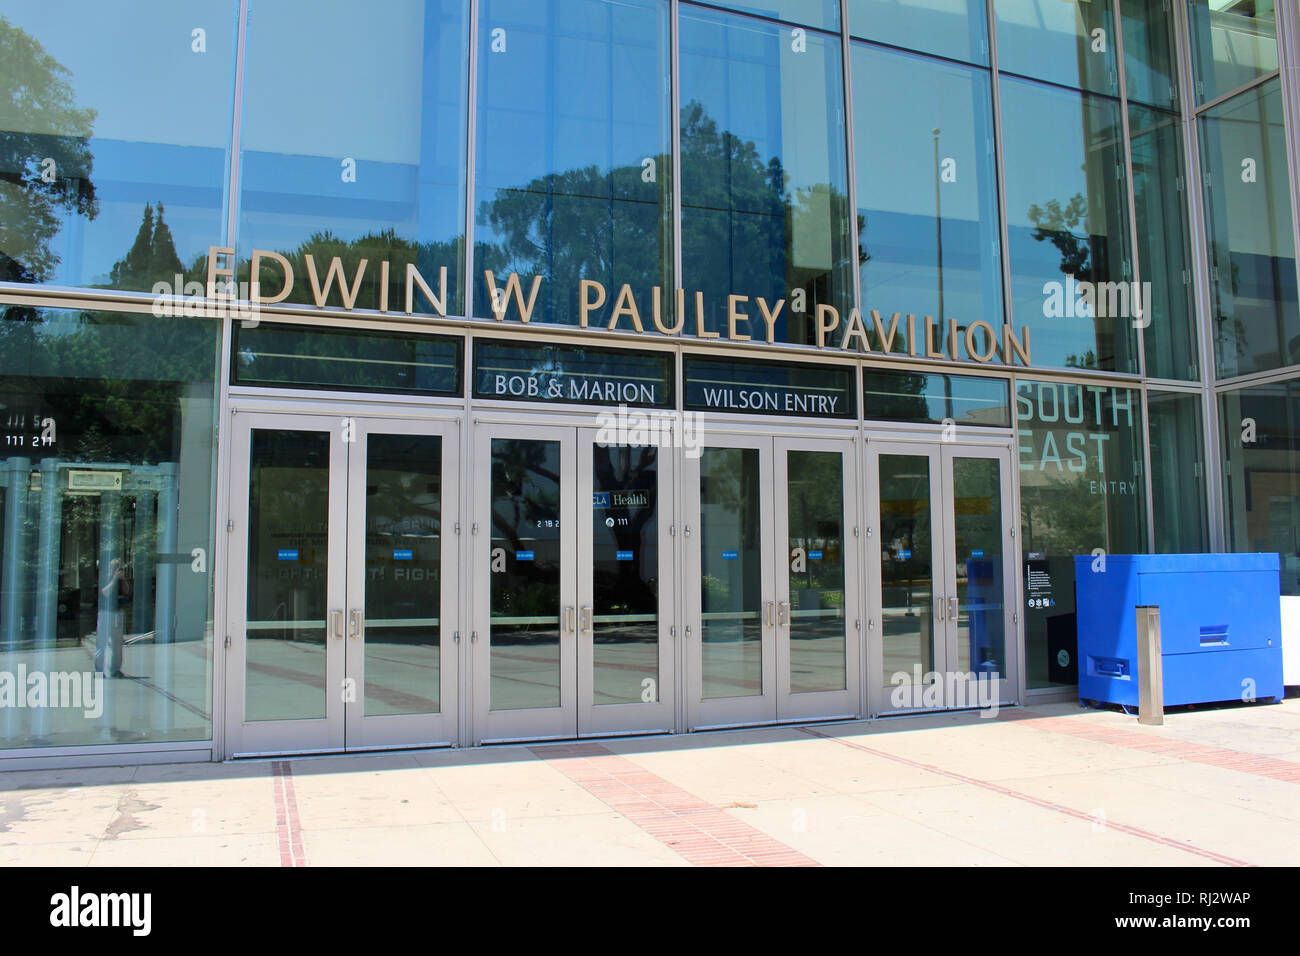 Los Angeles, California, USA. 27 July, 2017. Edwin W. Pauley Pavilion on the campus of The University of California, Los Angeles (UCLA). - Stock Image